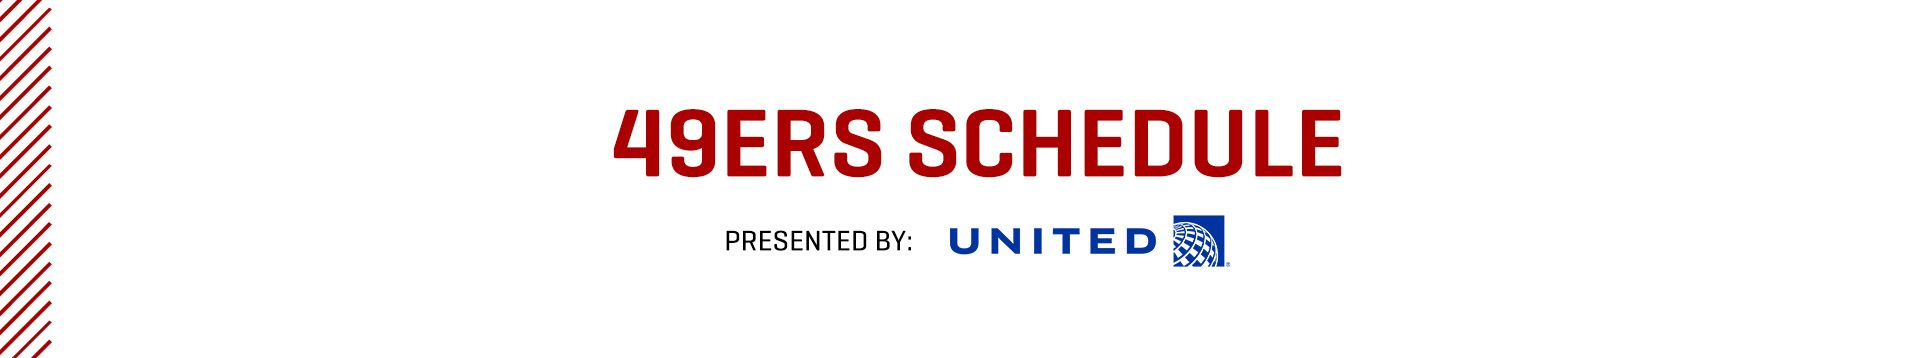 united-schedule-header